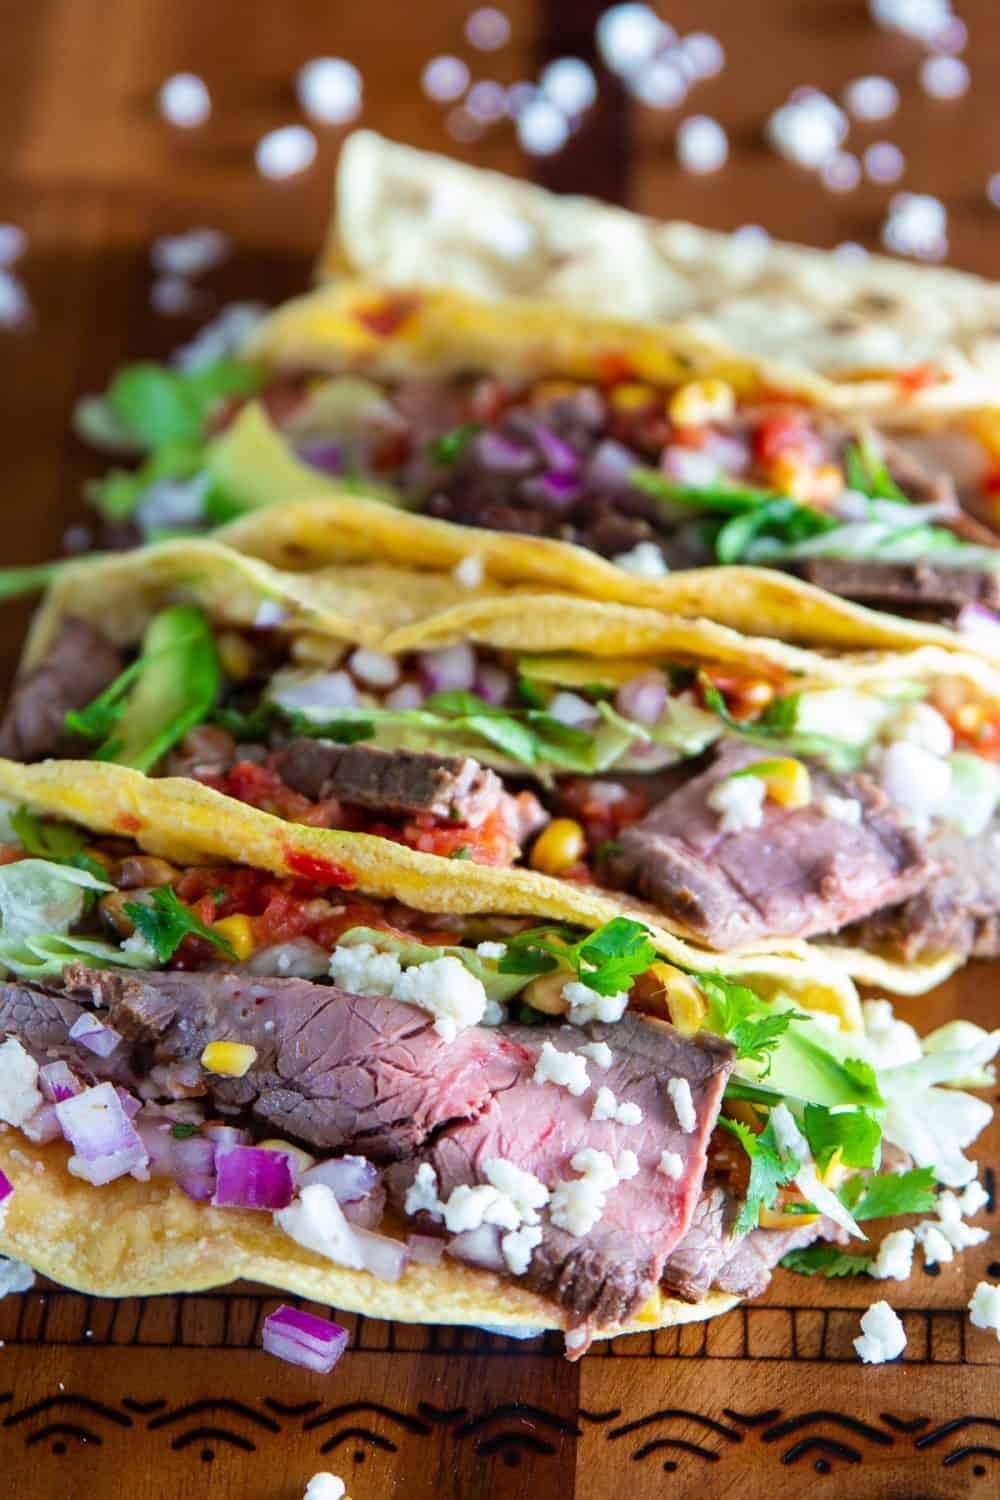 Overhead picture of steak taco recipe featuring flank steak in corn tortillas topped with fresh cheese, red onions, corn salsa, and cilantro sitting on a wooden surface